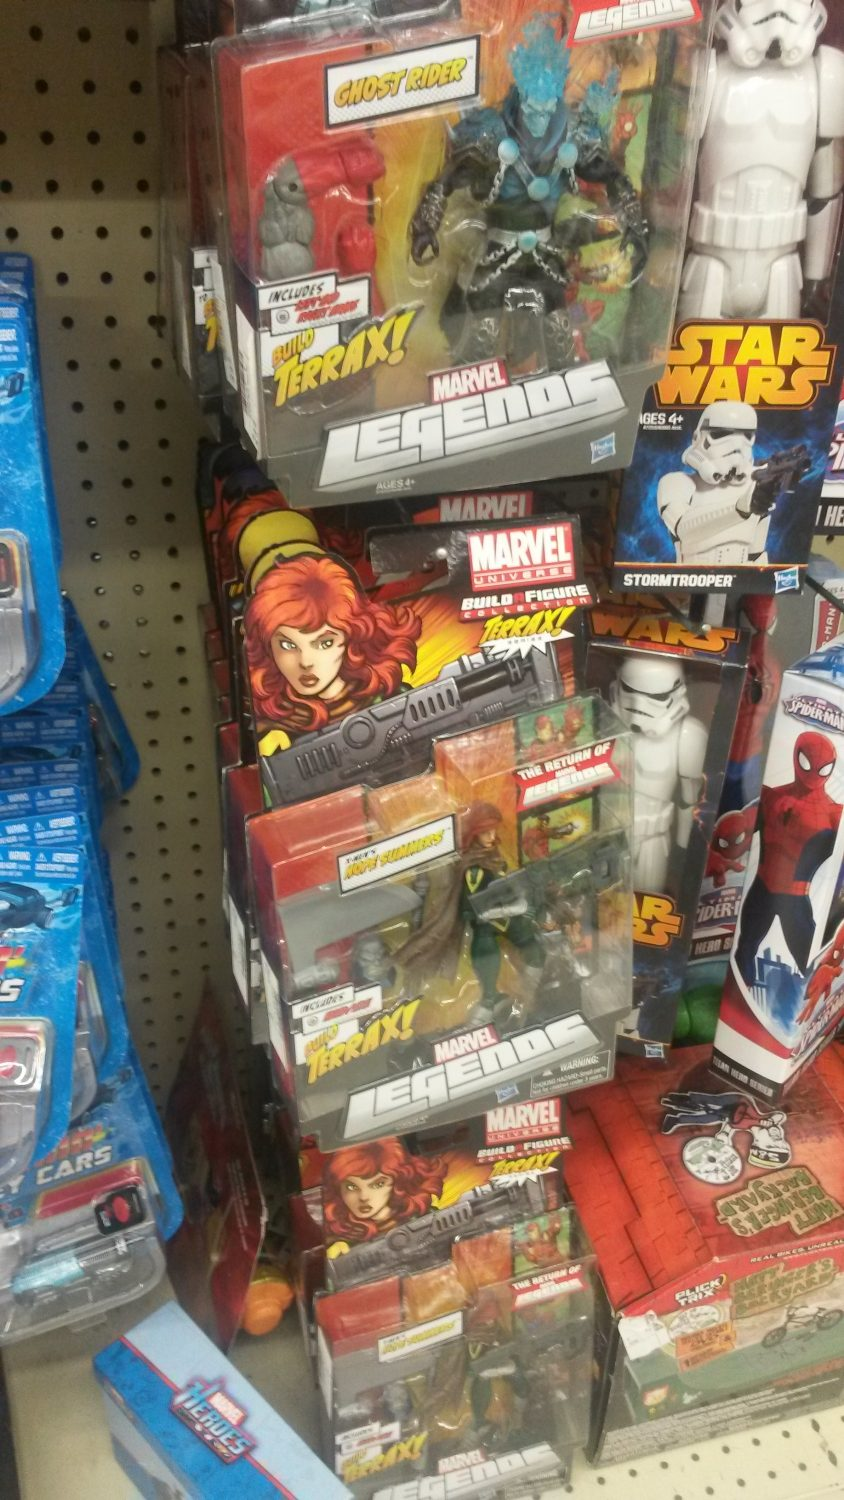 Hasbro Marvel Legends Terrax Series Figures Now At Gabriel Brothers Stores